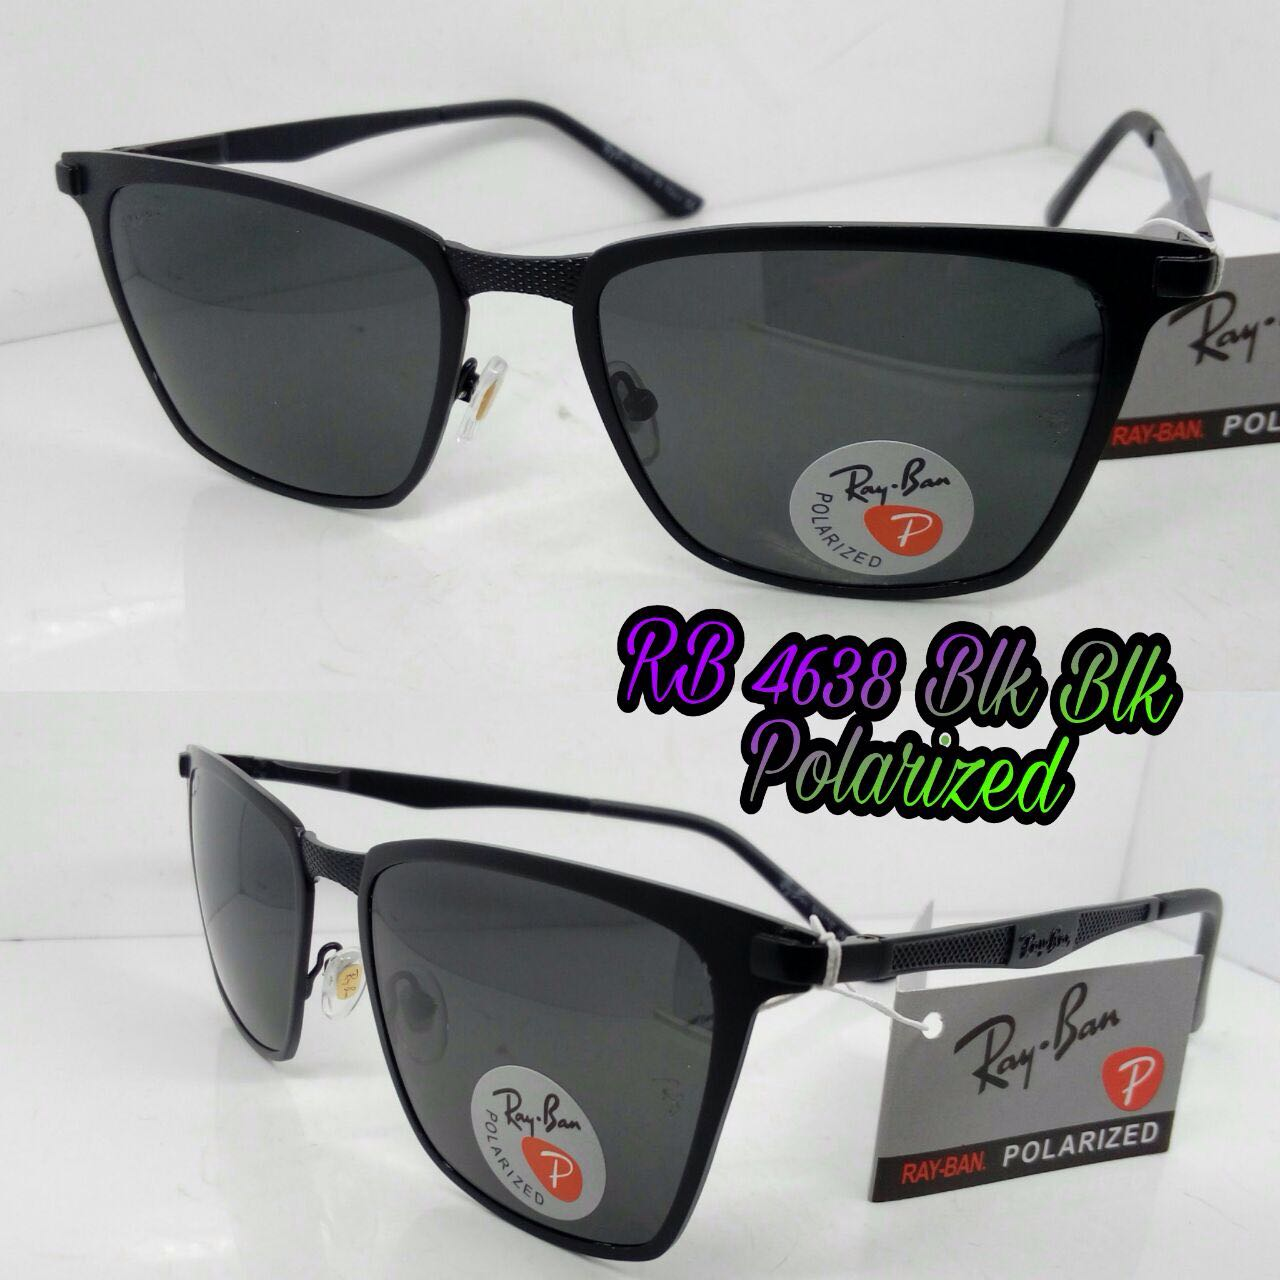 b1887855f9655 RB4638 Polarized New Arrival Ray Ban price 799 Only